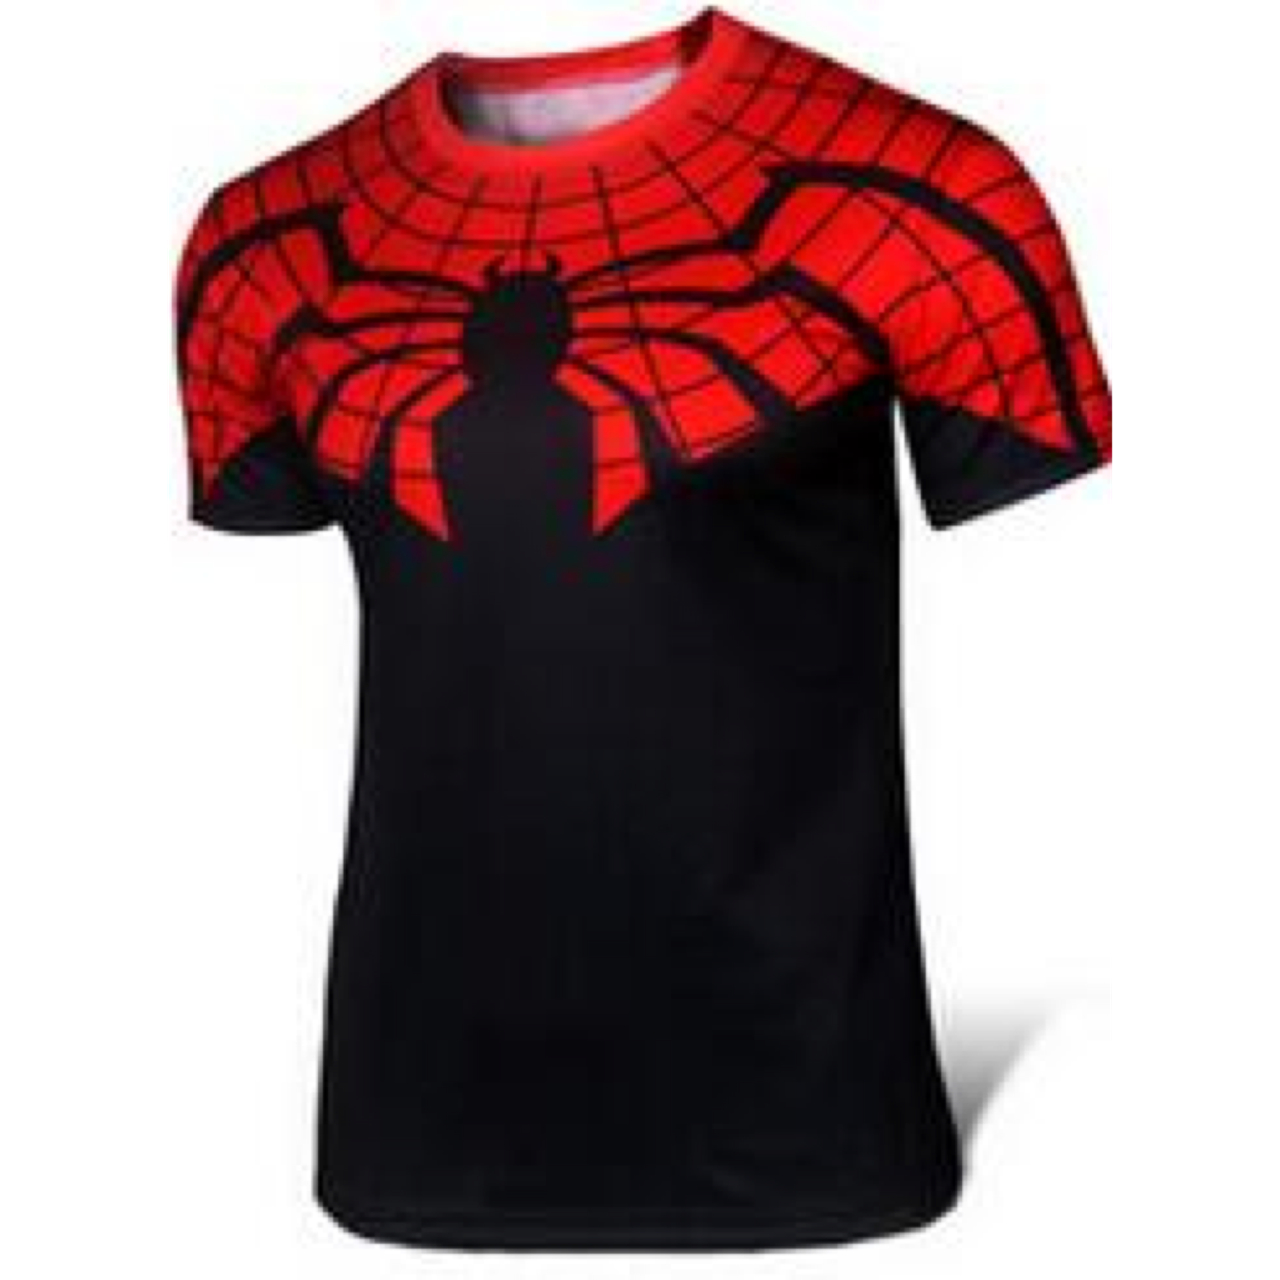 kaos superhero spiderman black and redKaos Superhero Spiderman Black and Red Dewasa